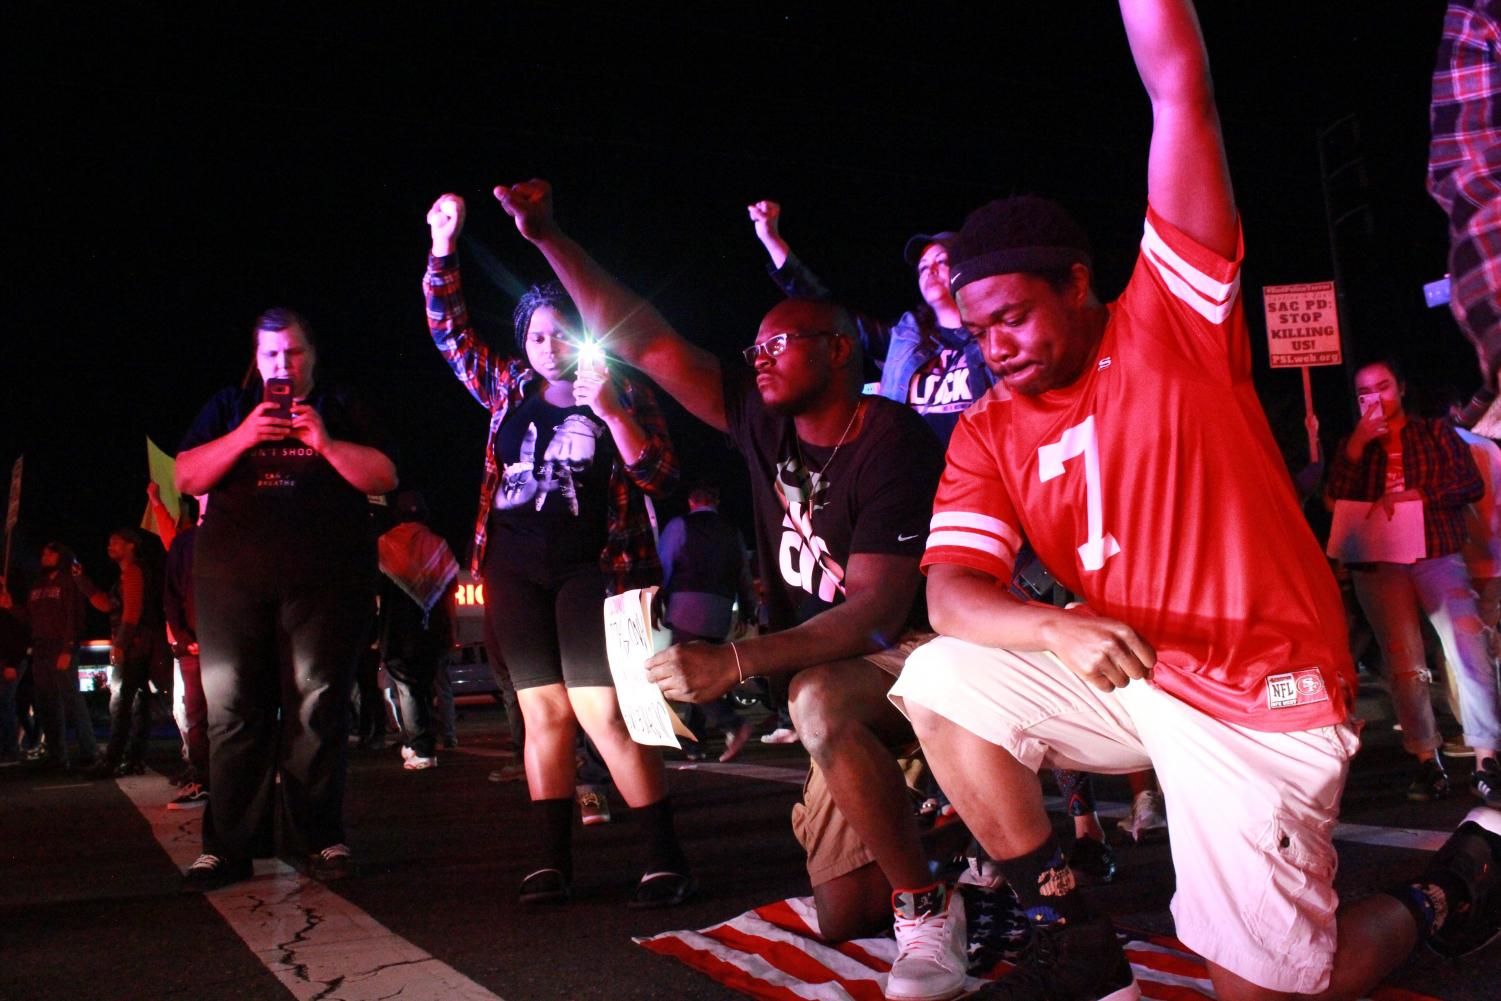 Protesters+occupy+Florin+Road+before+a+blockade+of+Sacramento+police+during+a+march+for+Stephon+Clark+on+Saturday%2C+March+31%2C+2018.+Activists+took+to+the+streets+of+southern+Sacramento+to+raise+awareness+to+the+recent+shooting+of+unarmed+black+man+Clark+in+his+grandmother%27s+backyard+by+Sacramento+officers.